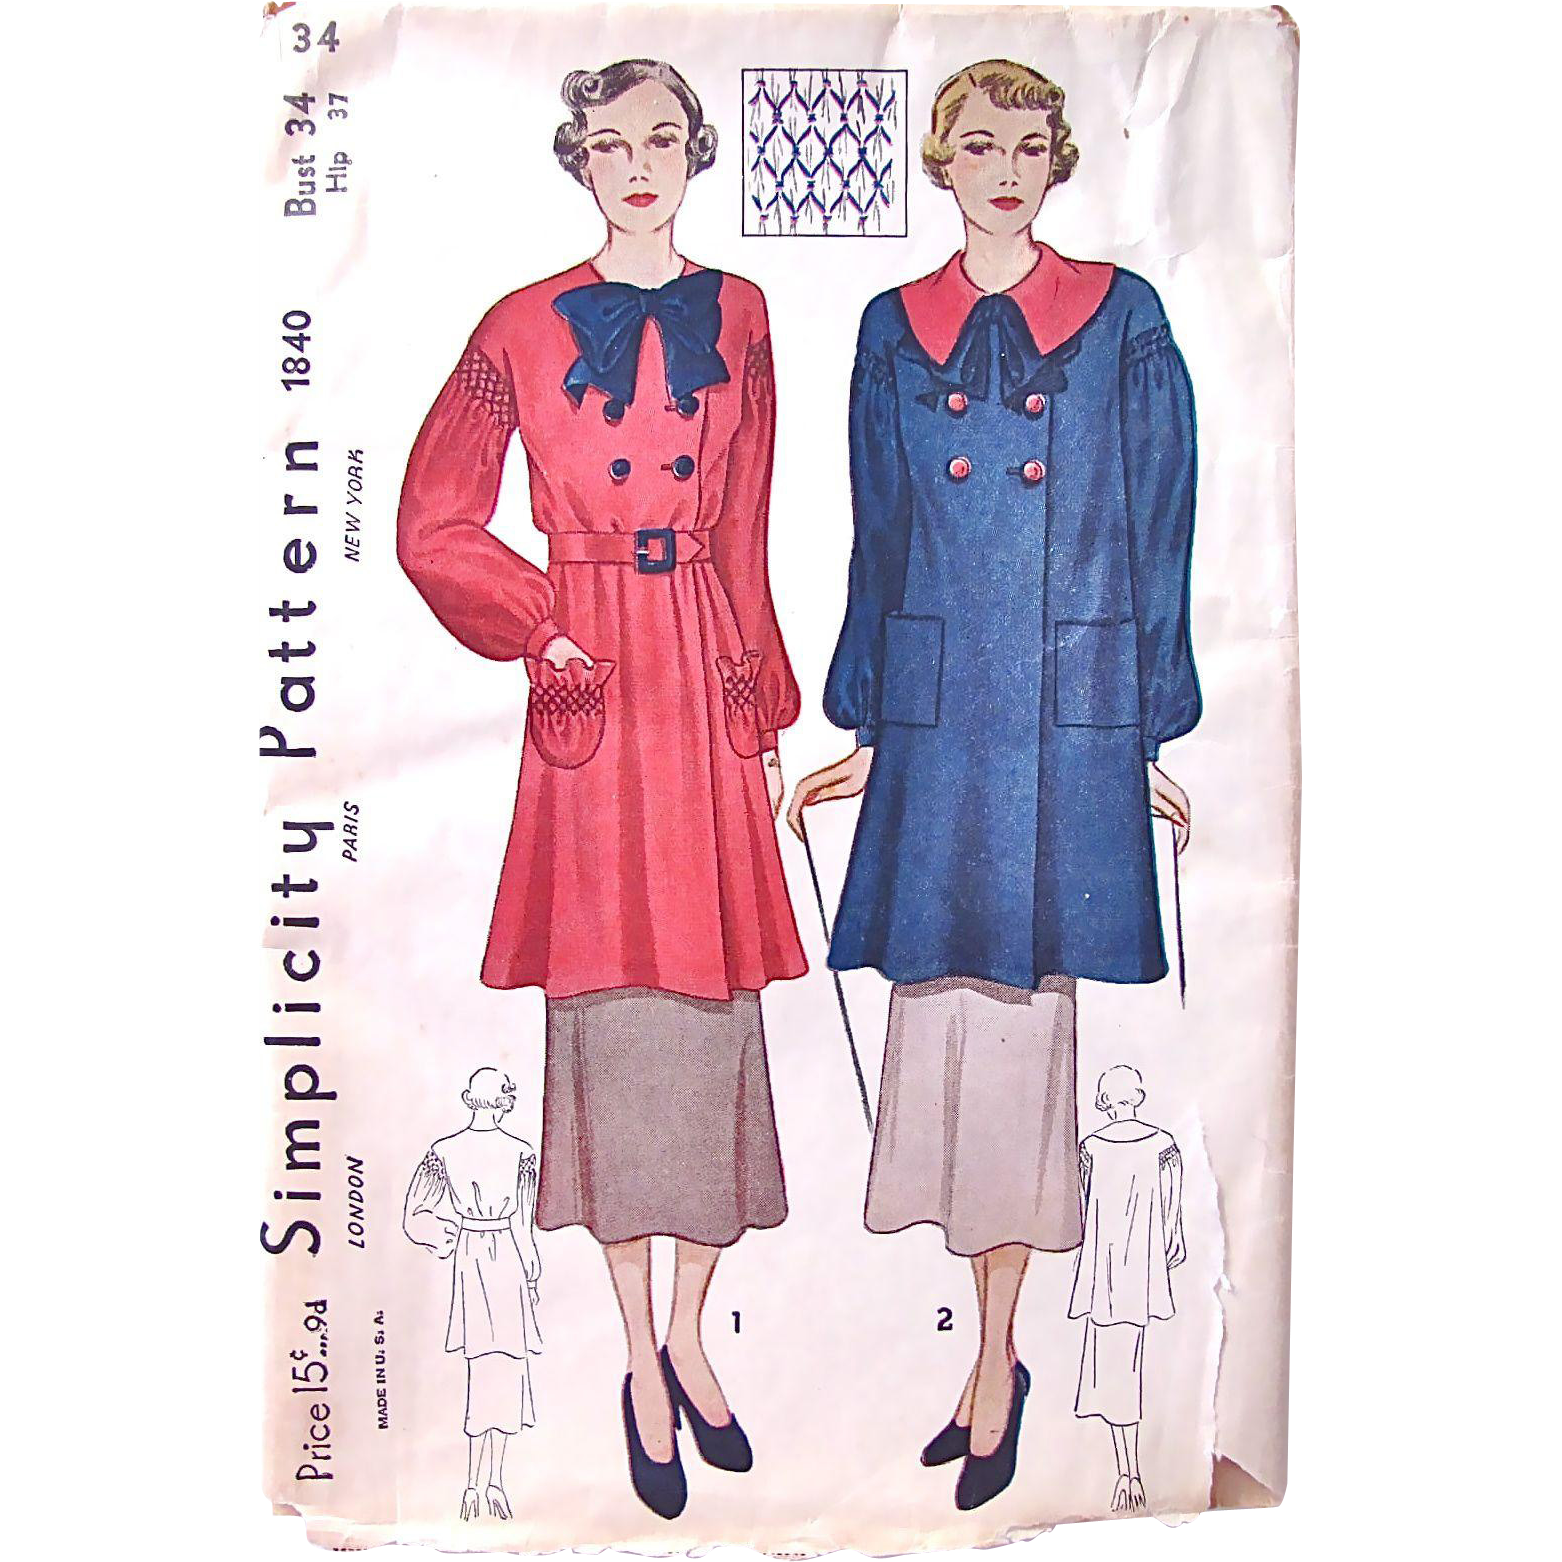 Simplicity Pattern No. 1840, Artist's Smock or Over-blouse, Factory Folded with Unused Transfer, Vintage 1930s, Misses Size Bust 34 inches